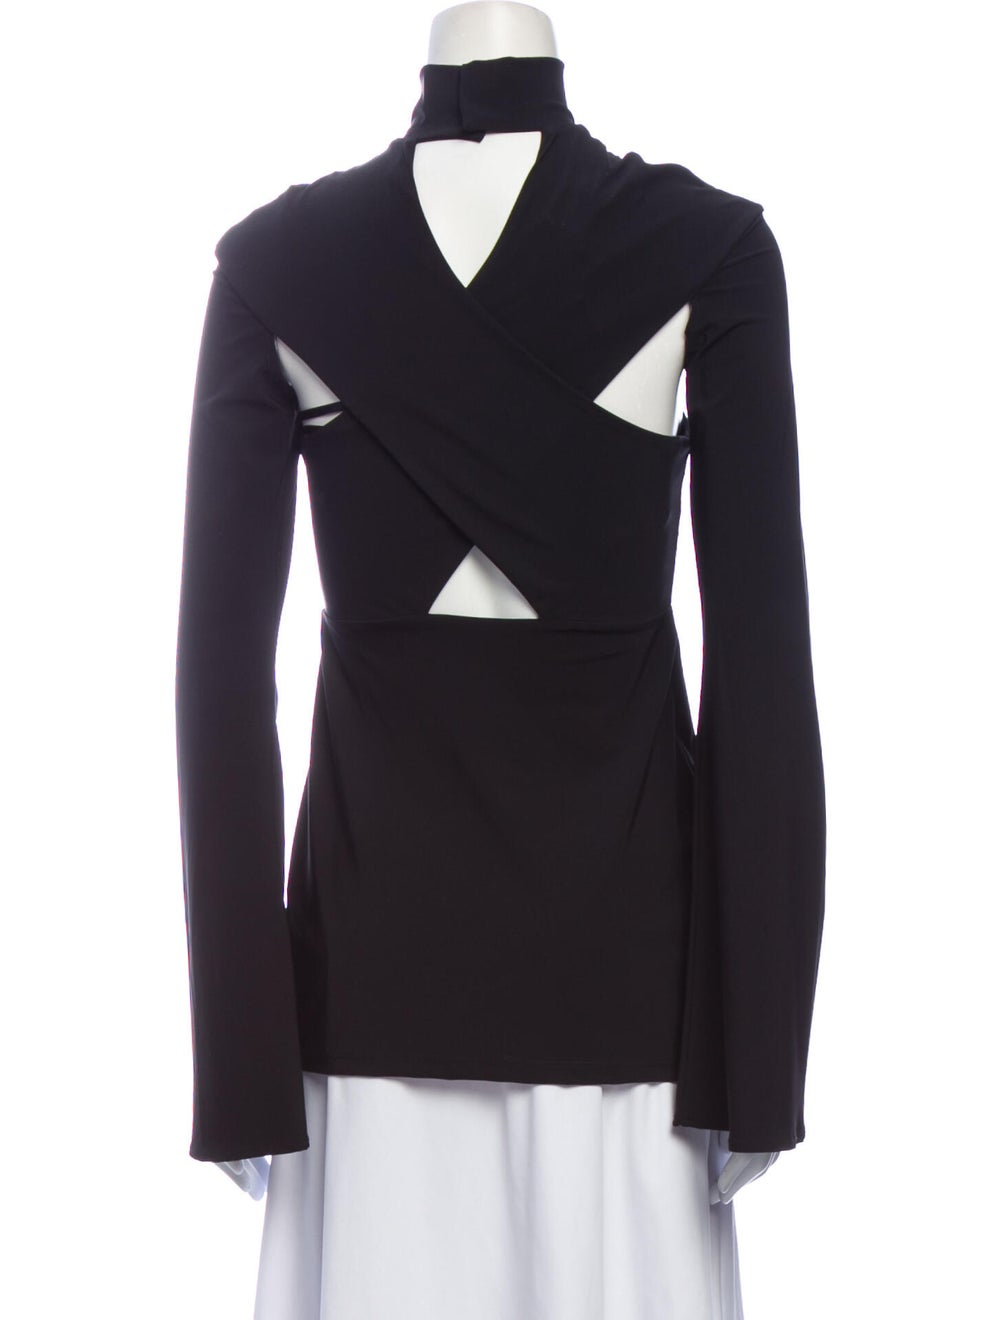 Beaufille Mock Neck Long Sleeve Top w/ Tags Black - image 3